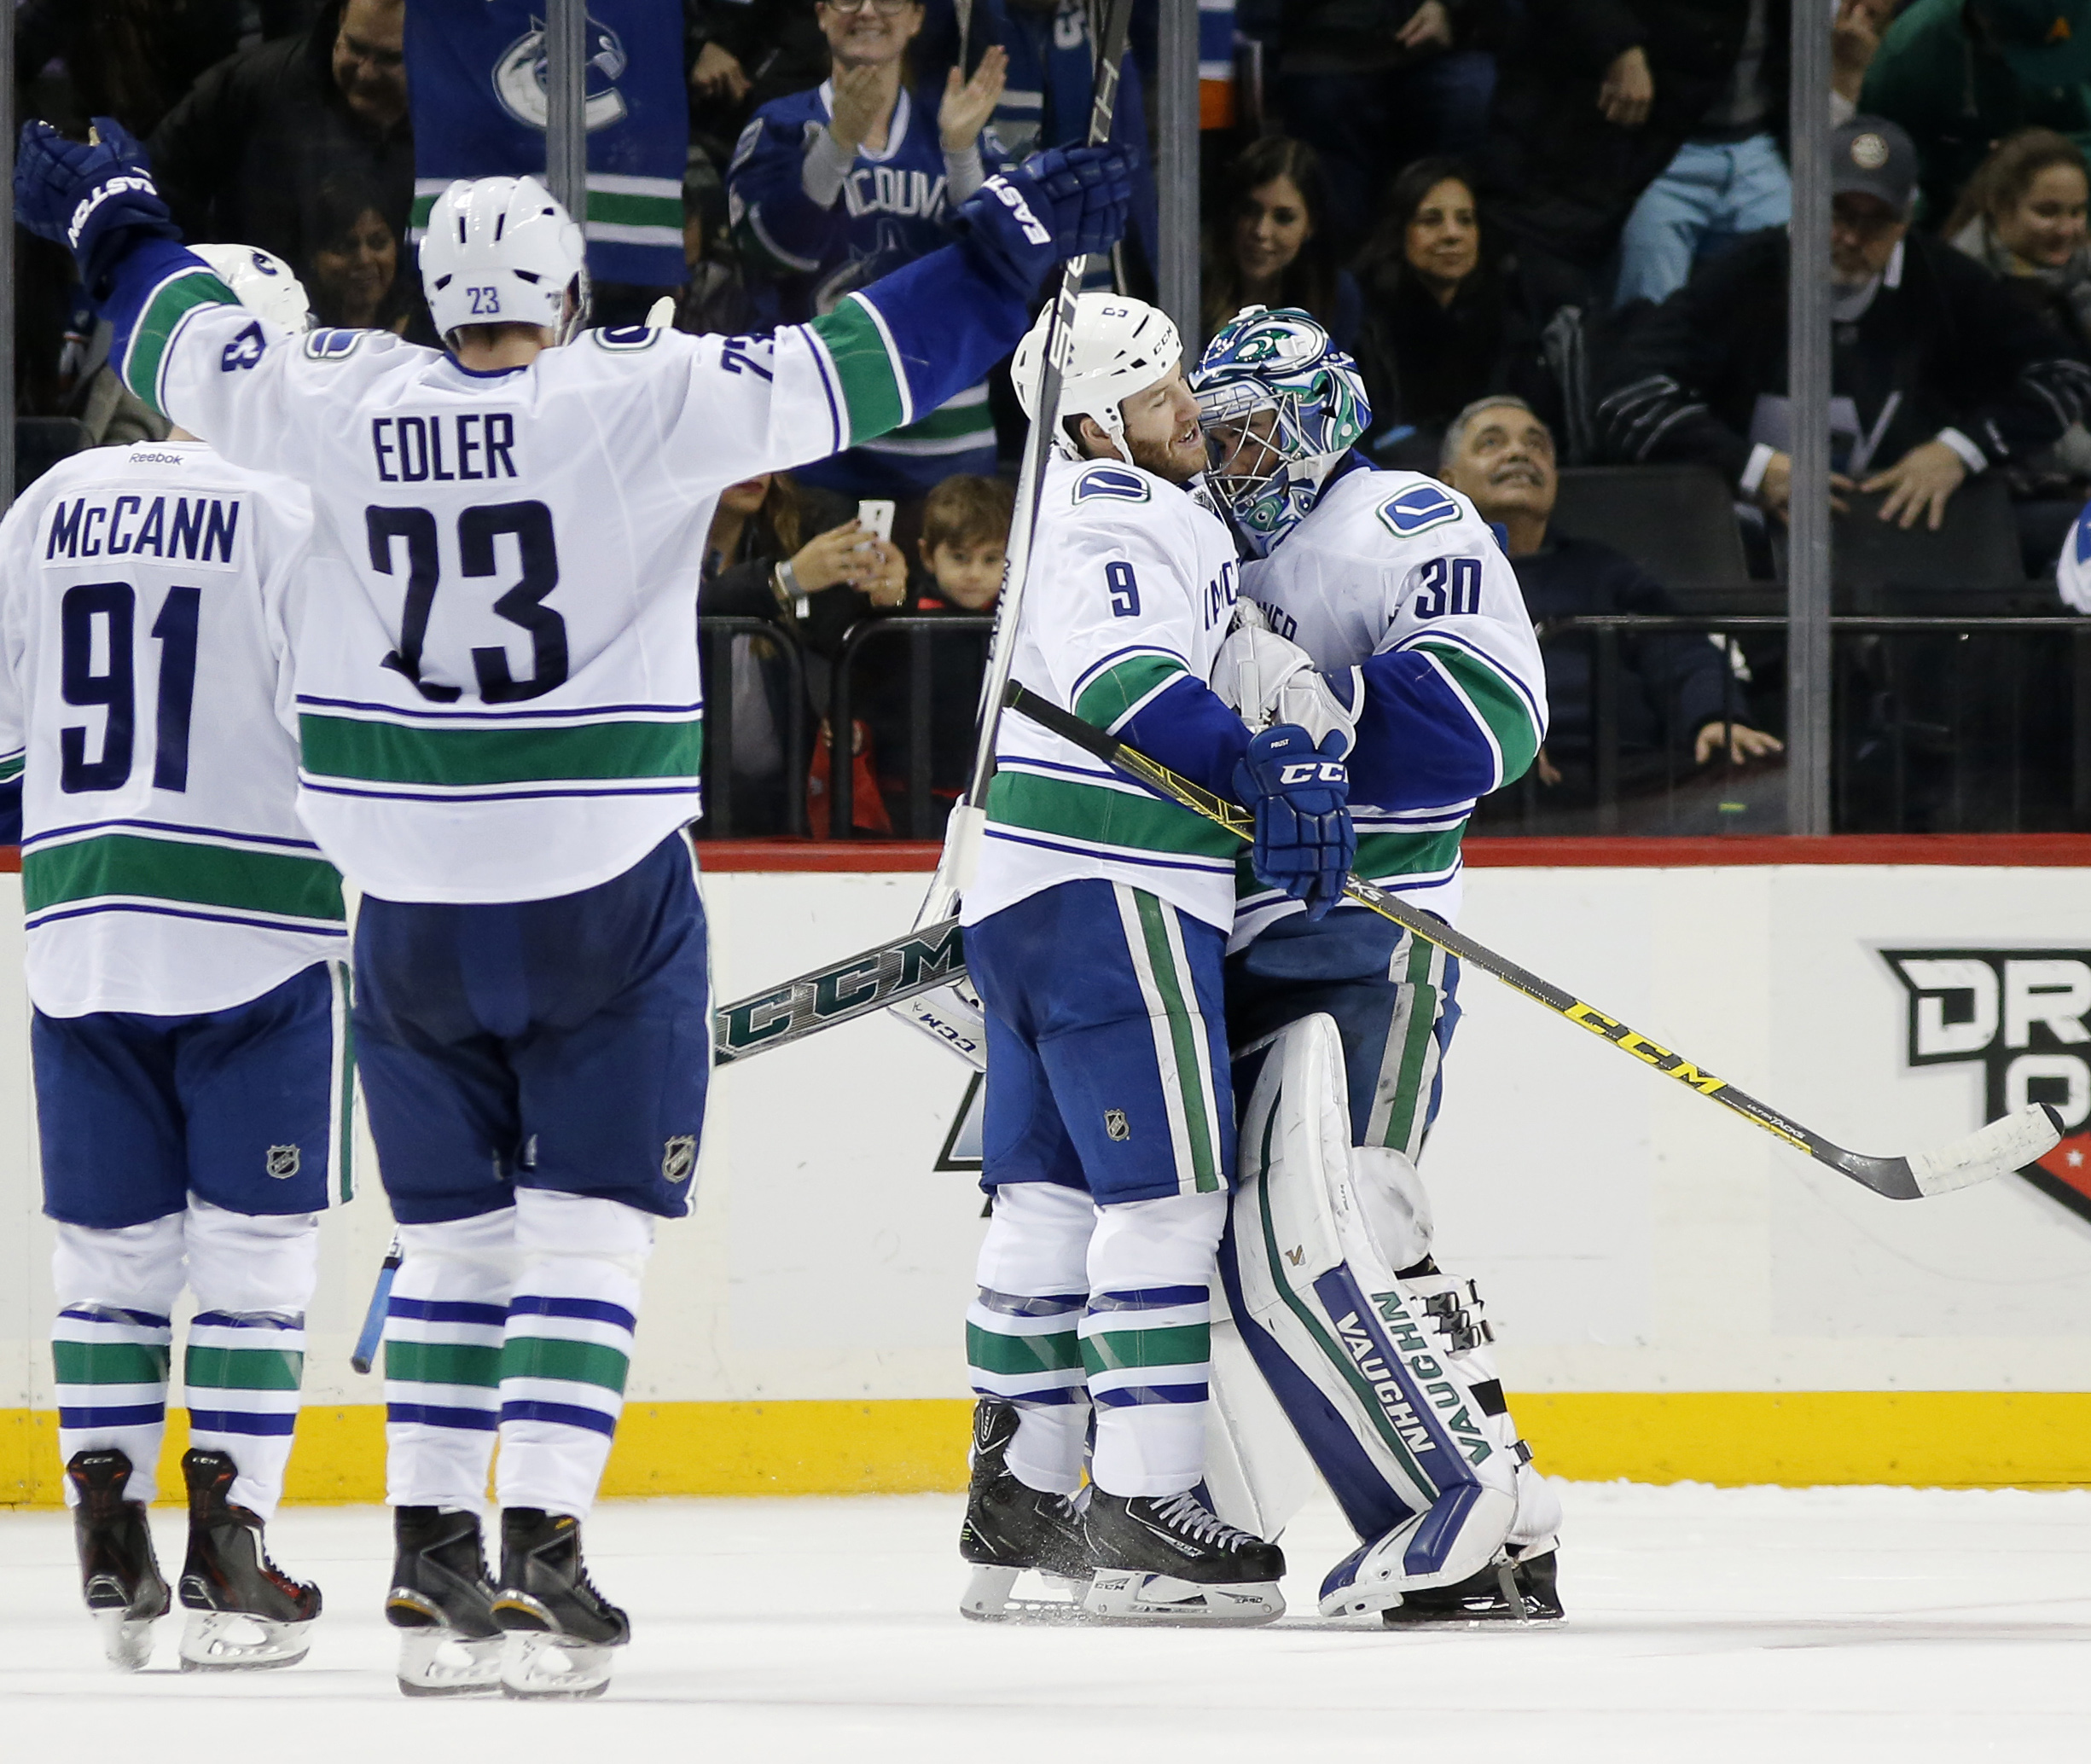 Vancouver Canucks right wing Brandon Prust (9) embraces Canucks goalie Ryan Miller (30) as Canucks defenseman Alexander Edler (23), of Sweden, celebrates after they defeated the New York Islanders 2-1 in a shootout in overtime of an NHL hockey game in New